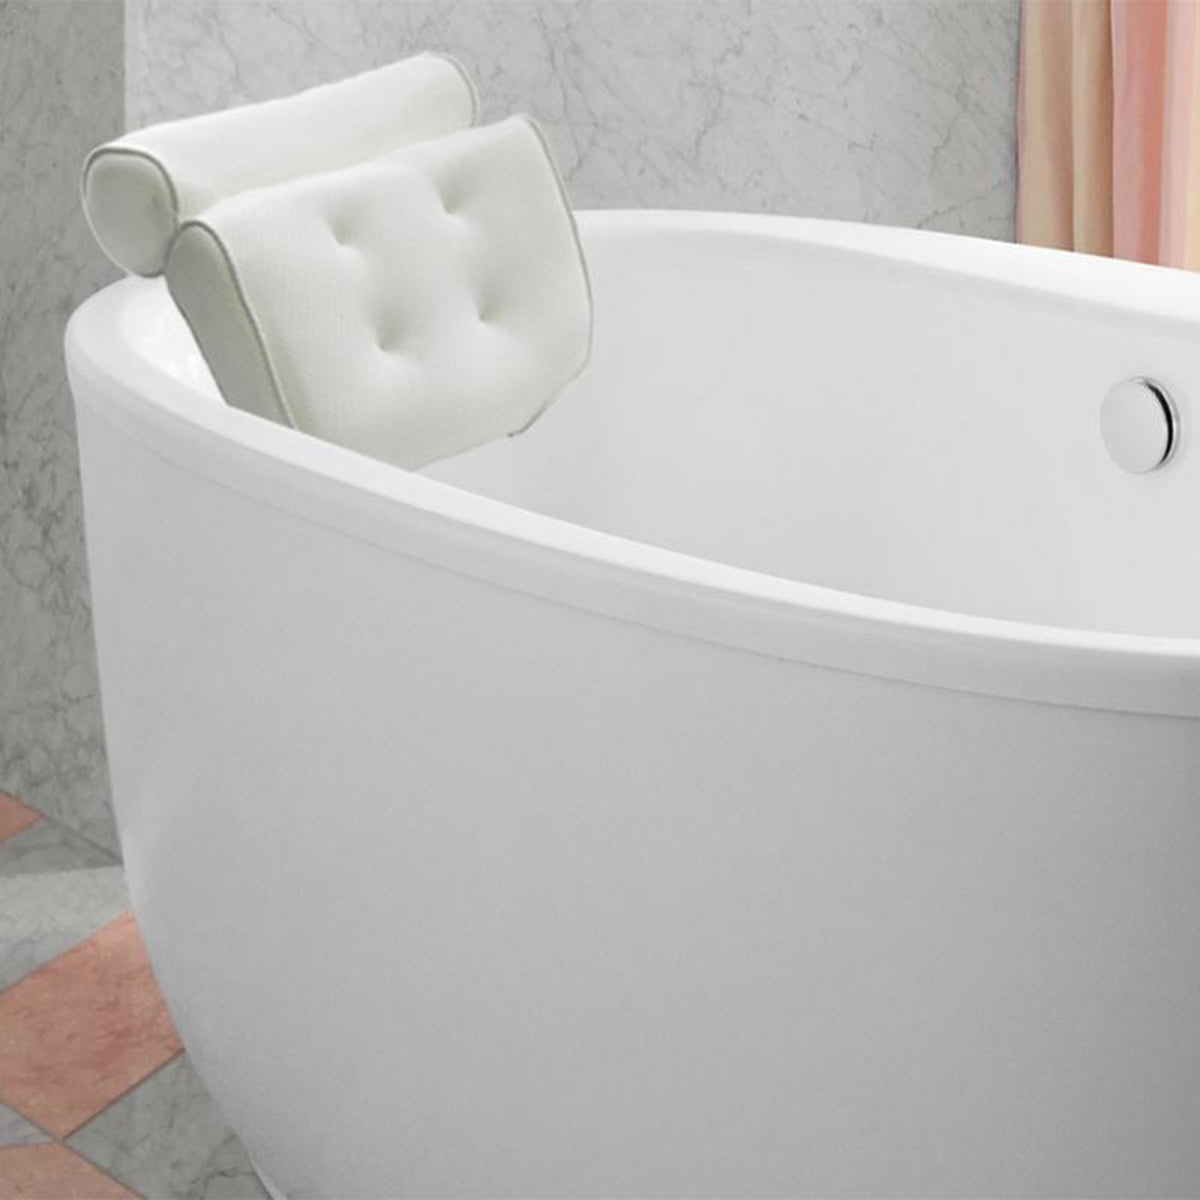 bath headrest